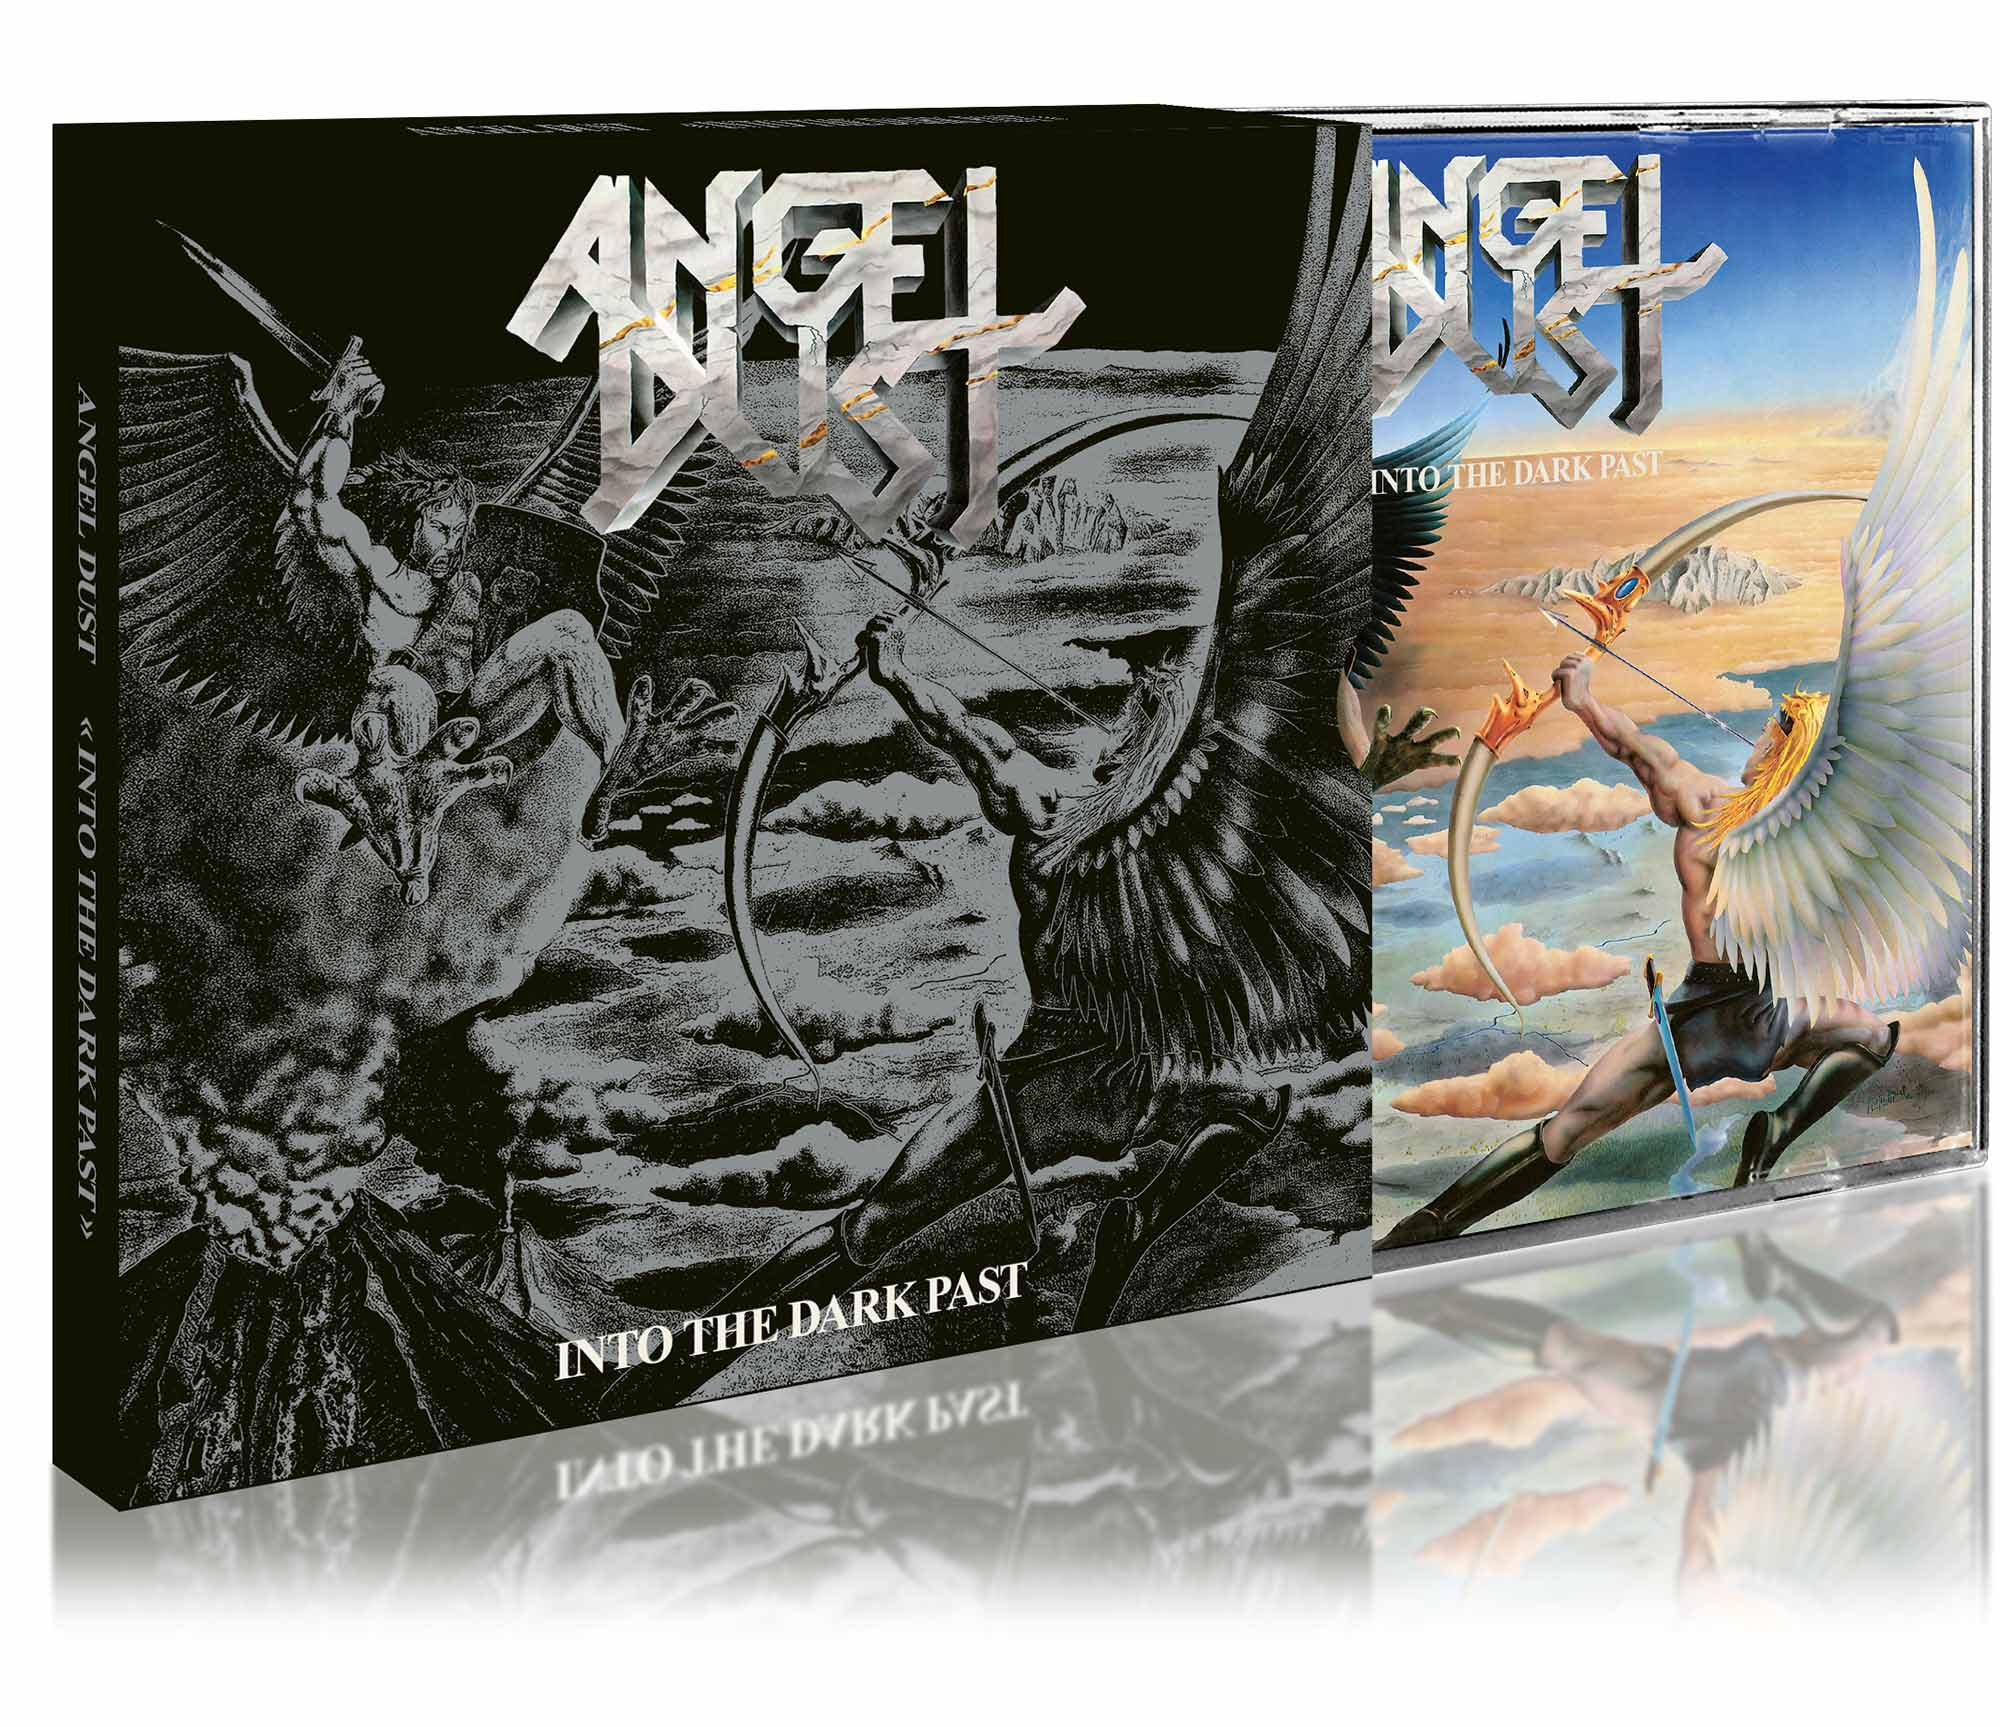 Angel Dust TOP 100 Traditional Metal Albums of all-time KAM1986HHR